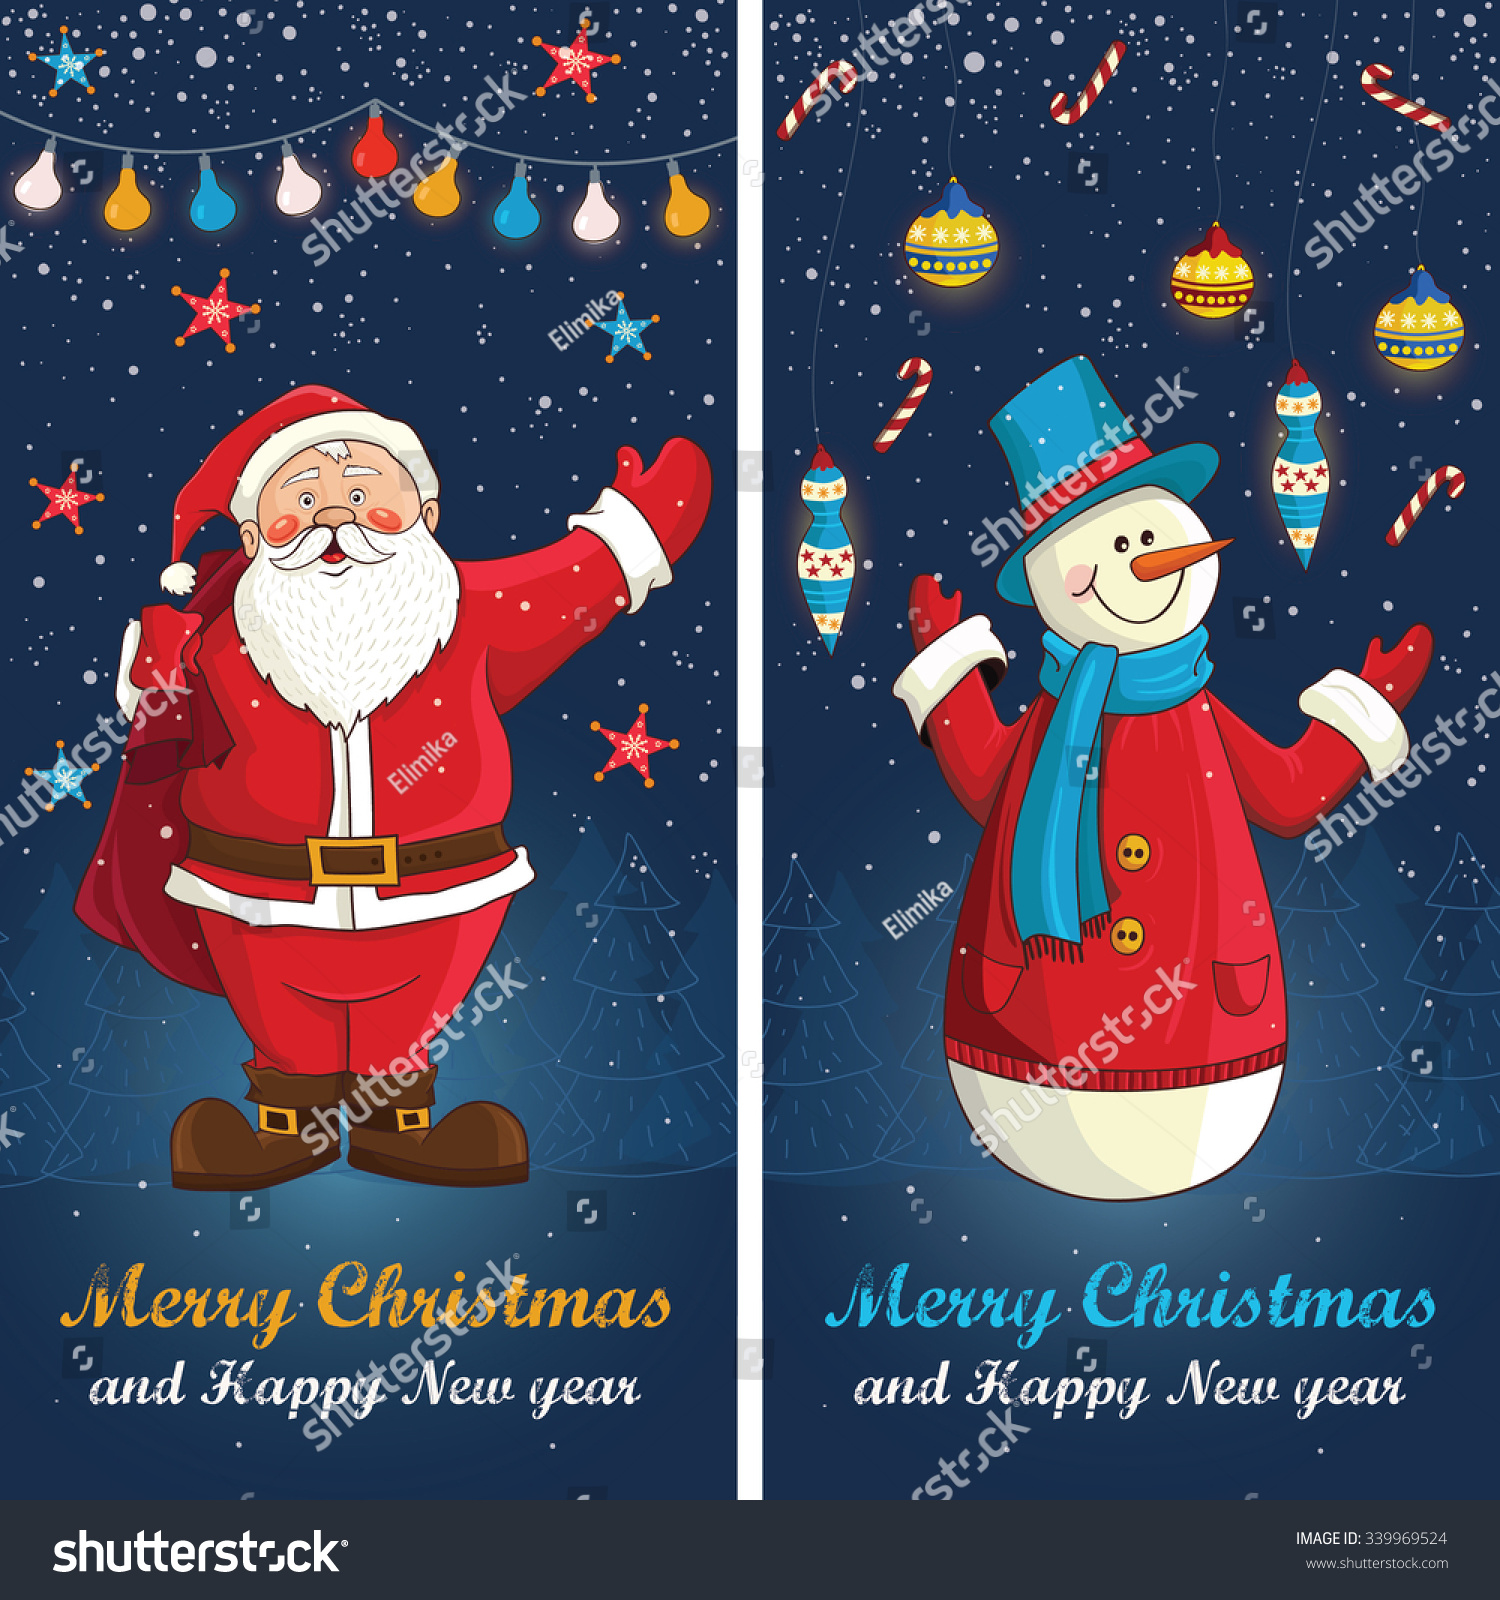 merry christmas card in vectorcute funny santa claus and snowmen - Funny Merry Christmas Greetings